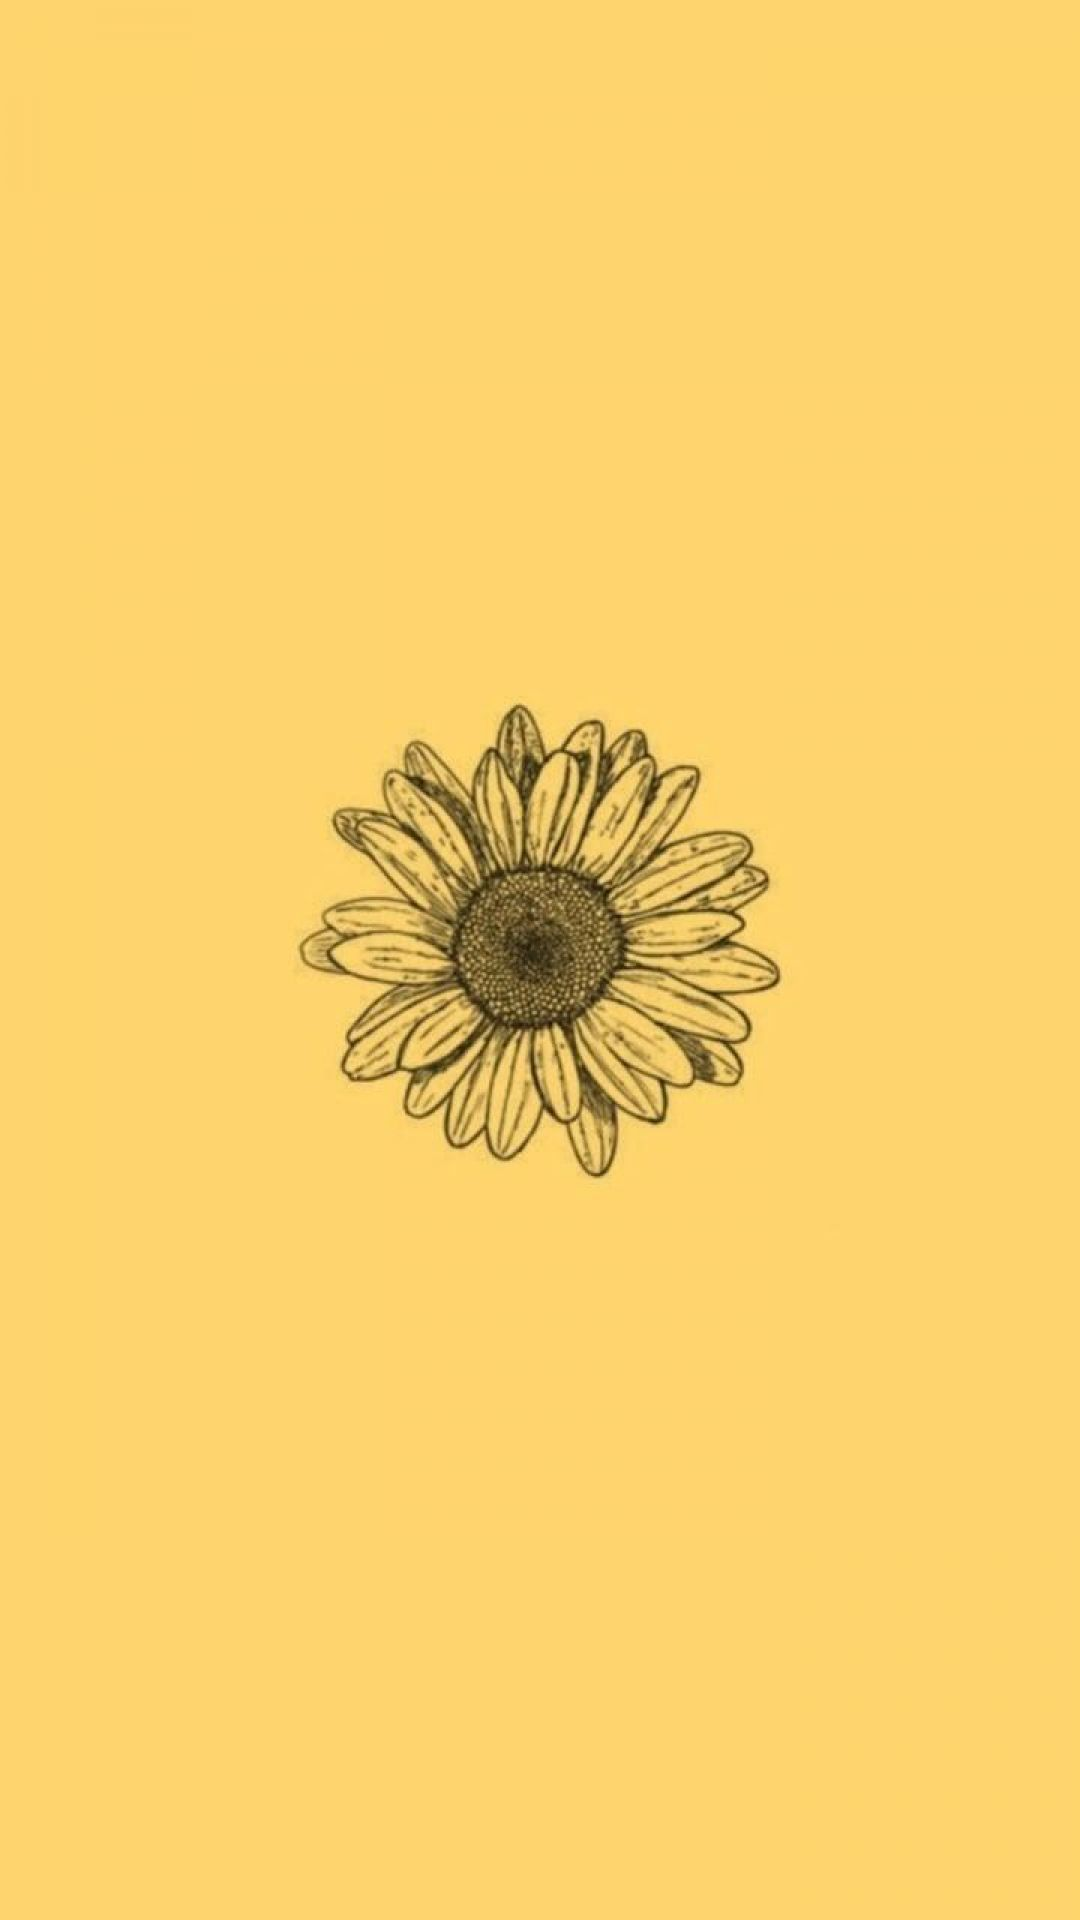 Flower Android Iphone Desktop Hd Backgrounds Wallpapers 1080p 4k 128120 Iphone Wallpaper Yellow Yellow Aesthetic Pastel Aesthetic Iphone Wallpaper